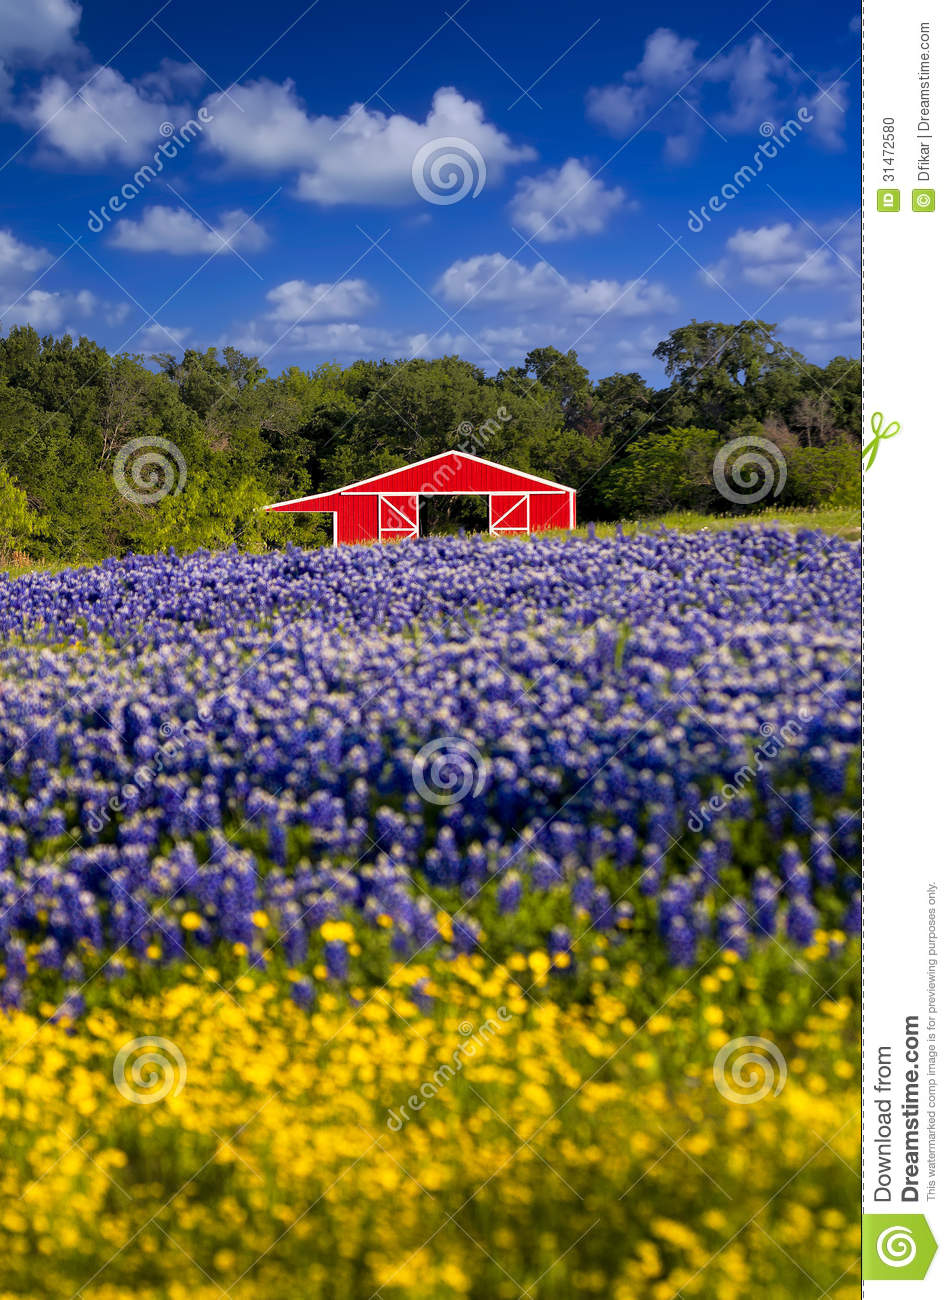 Red Barn In The Bluebonnet Field Stock Photo - Image: 31472580